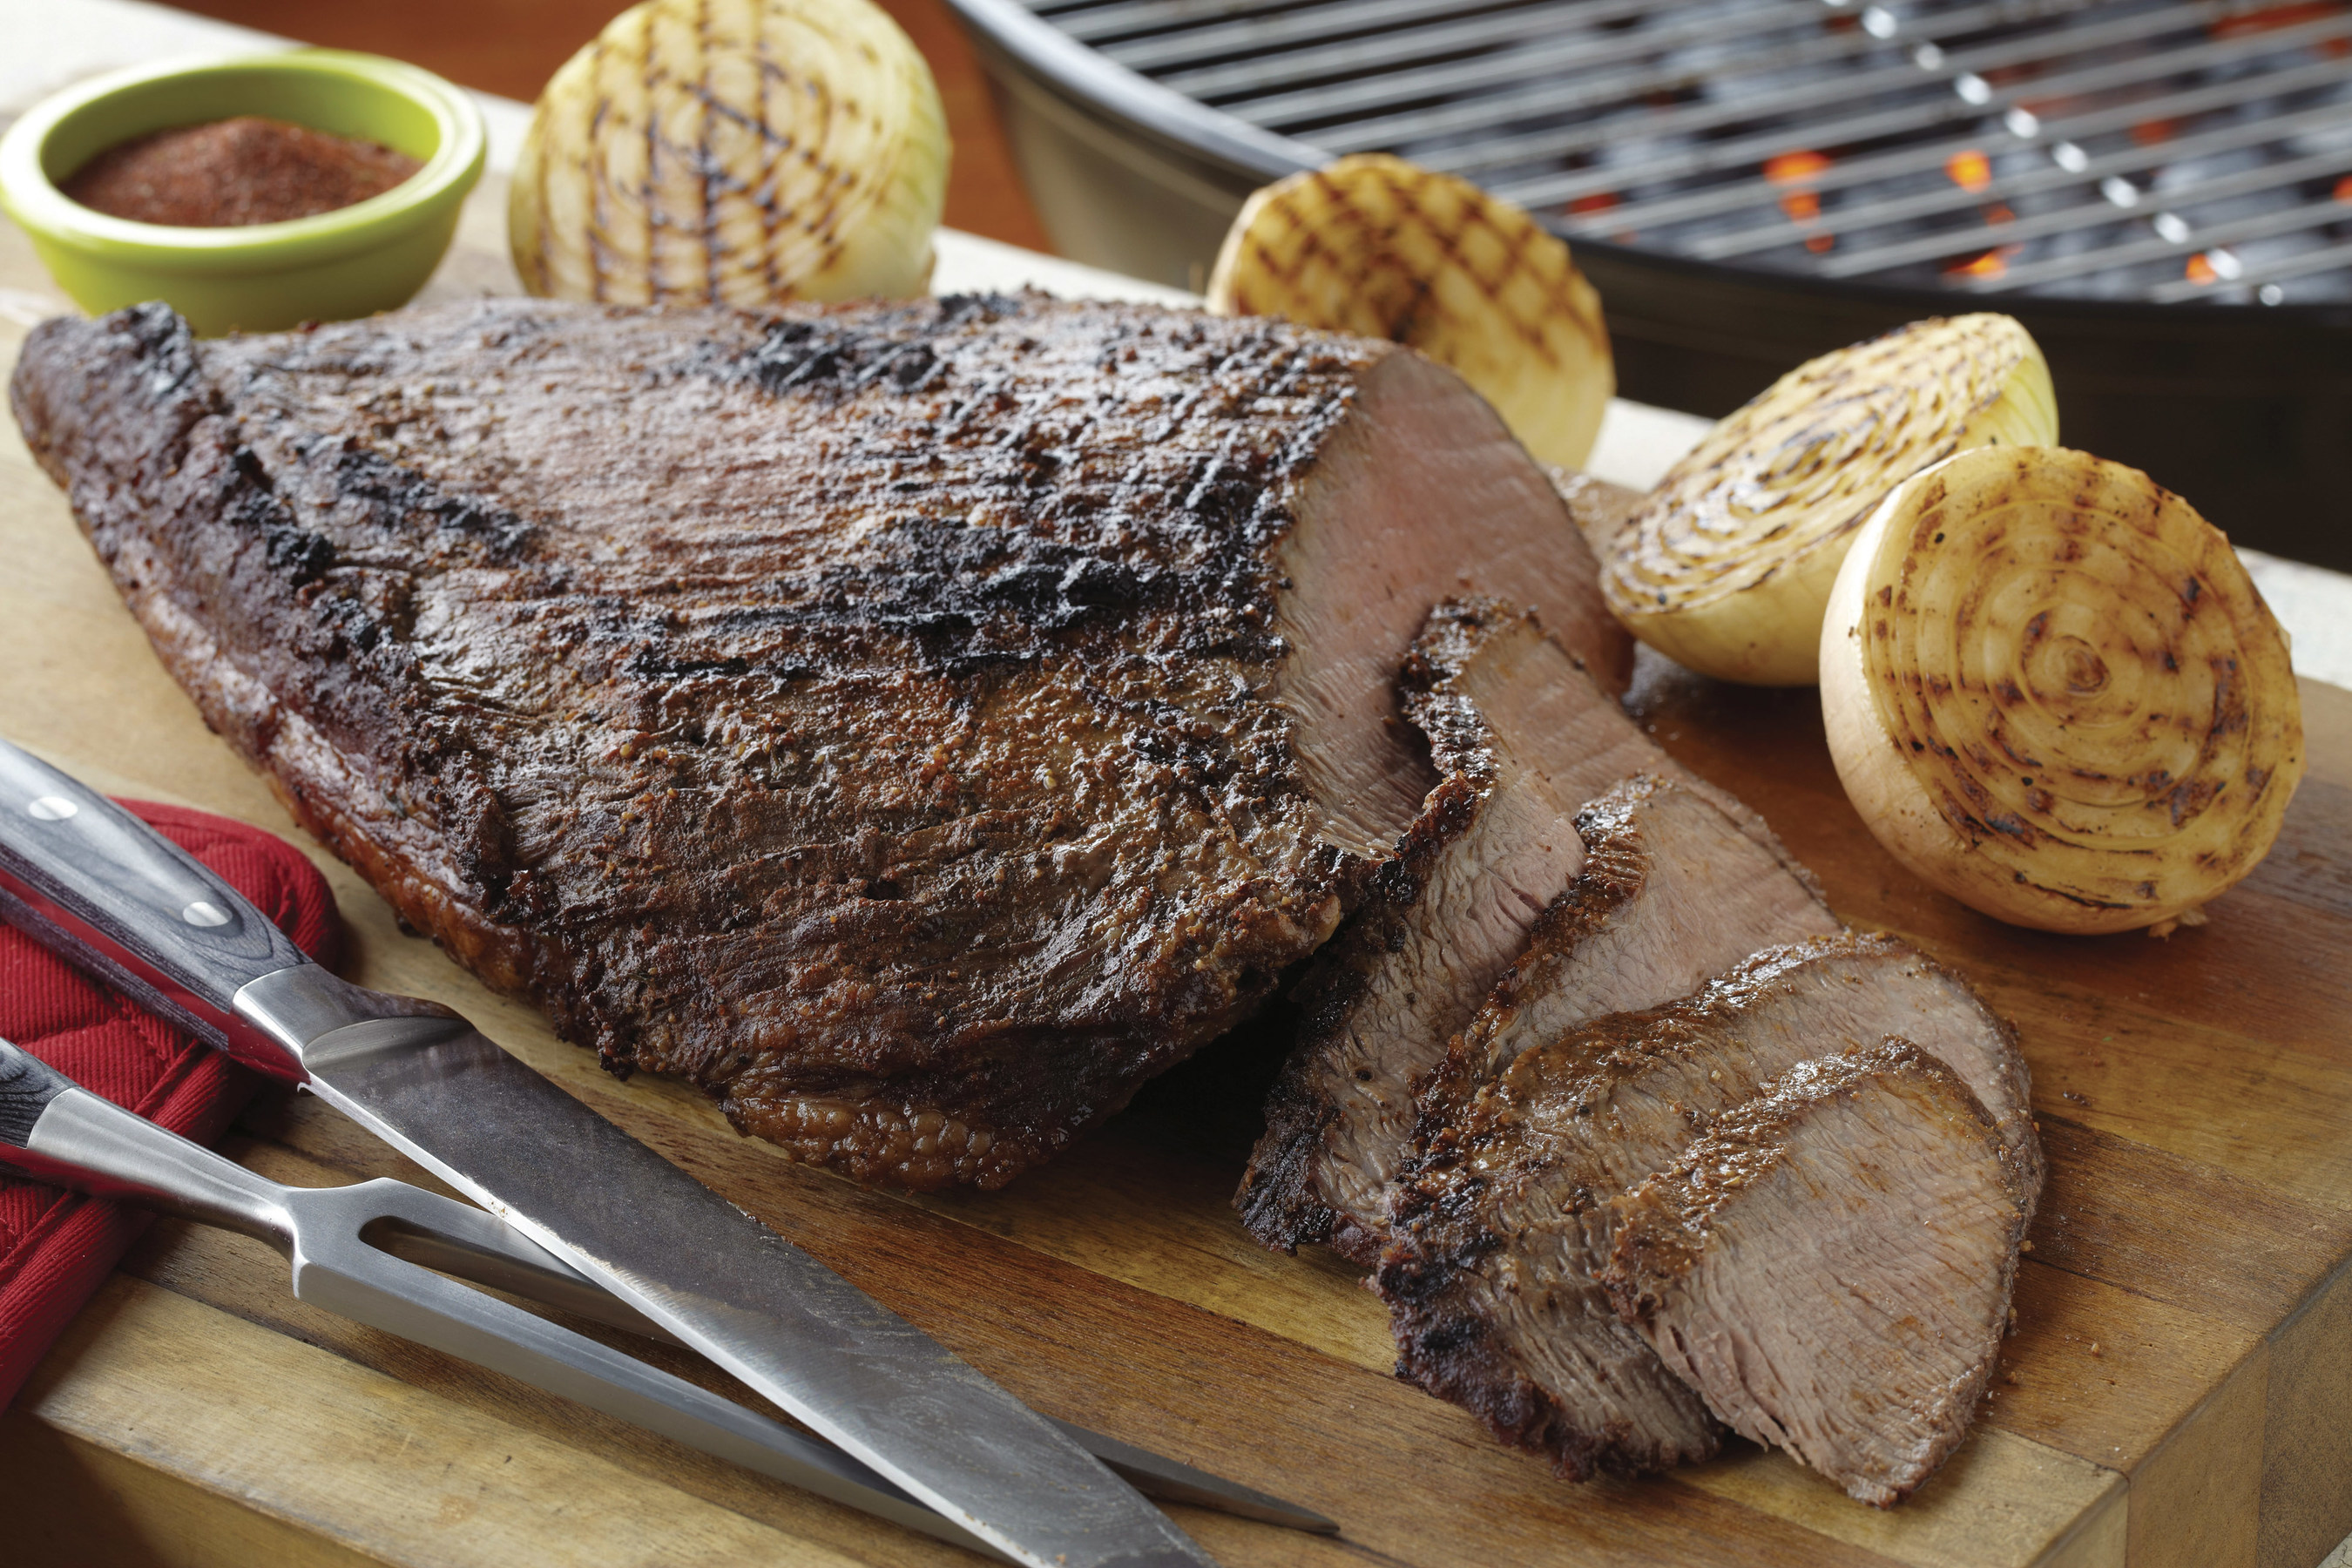 Brisket Over Briquets: Easy Ideas with Grilled Leftovers